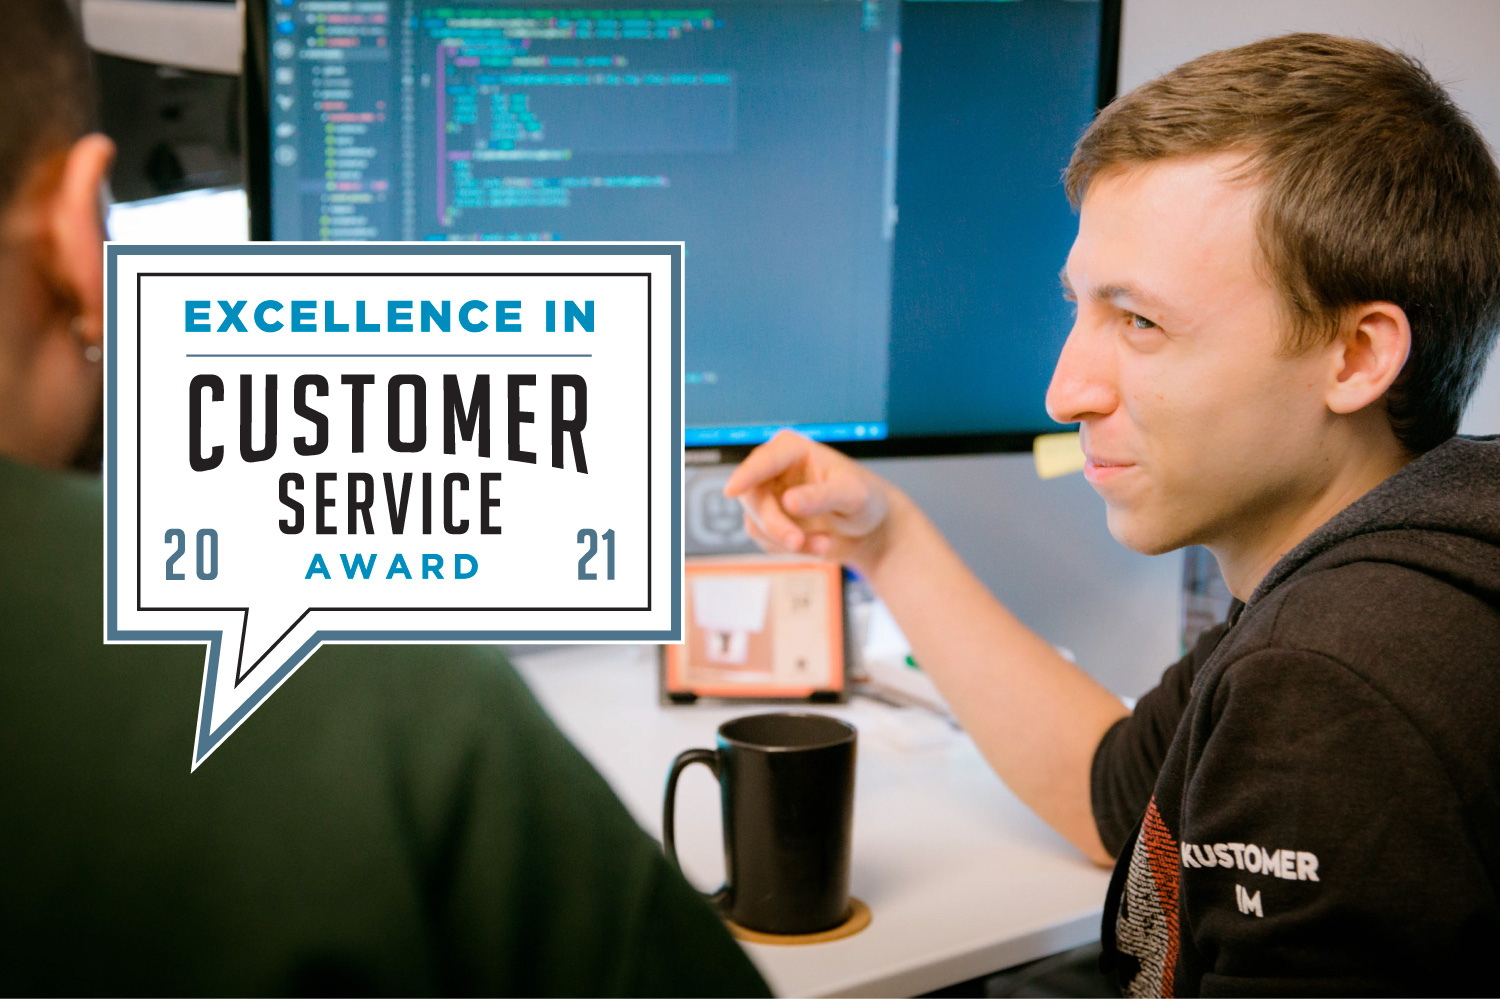 Kustomer Named a Winner in the 2021 Excellence in Customer Service Awards